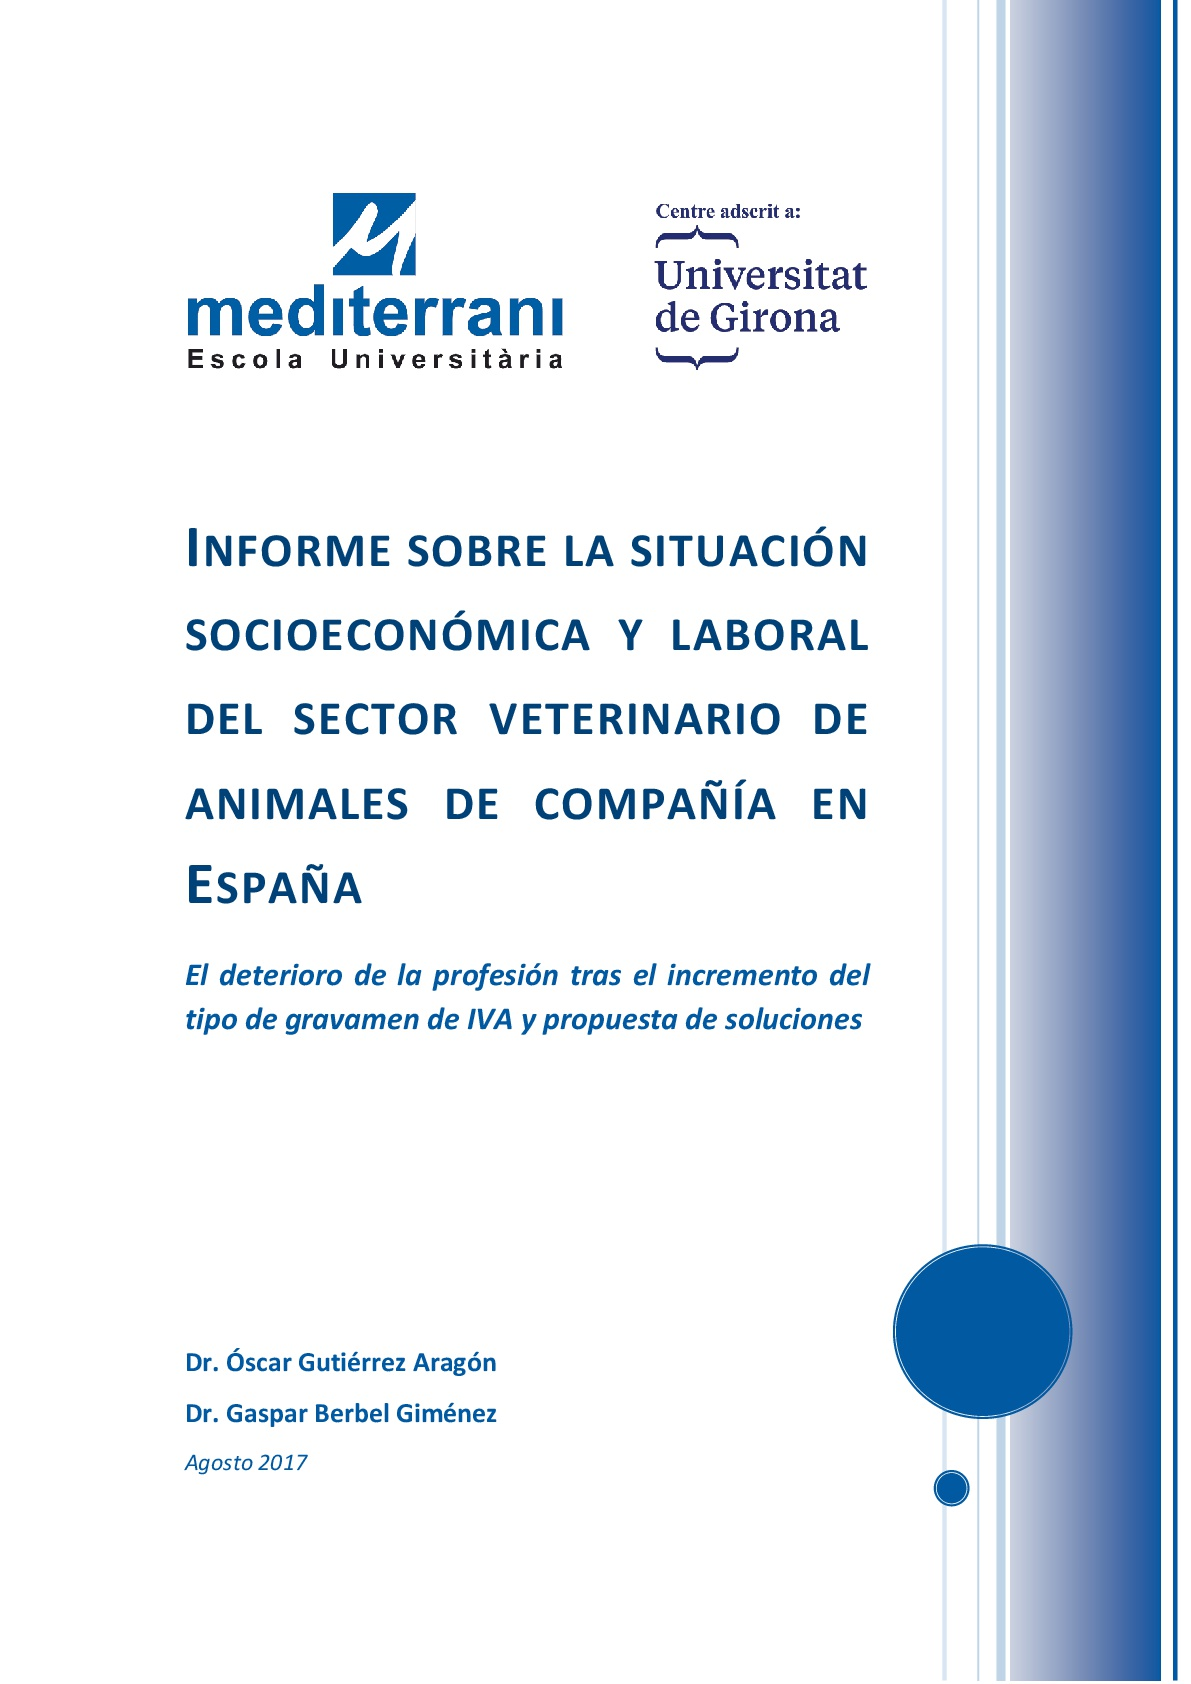 Informe-Veterinario-2017-+-informe-legal-2015-(3)-001